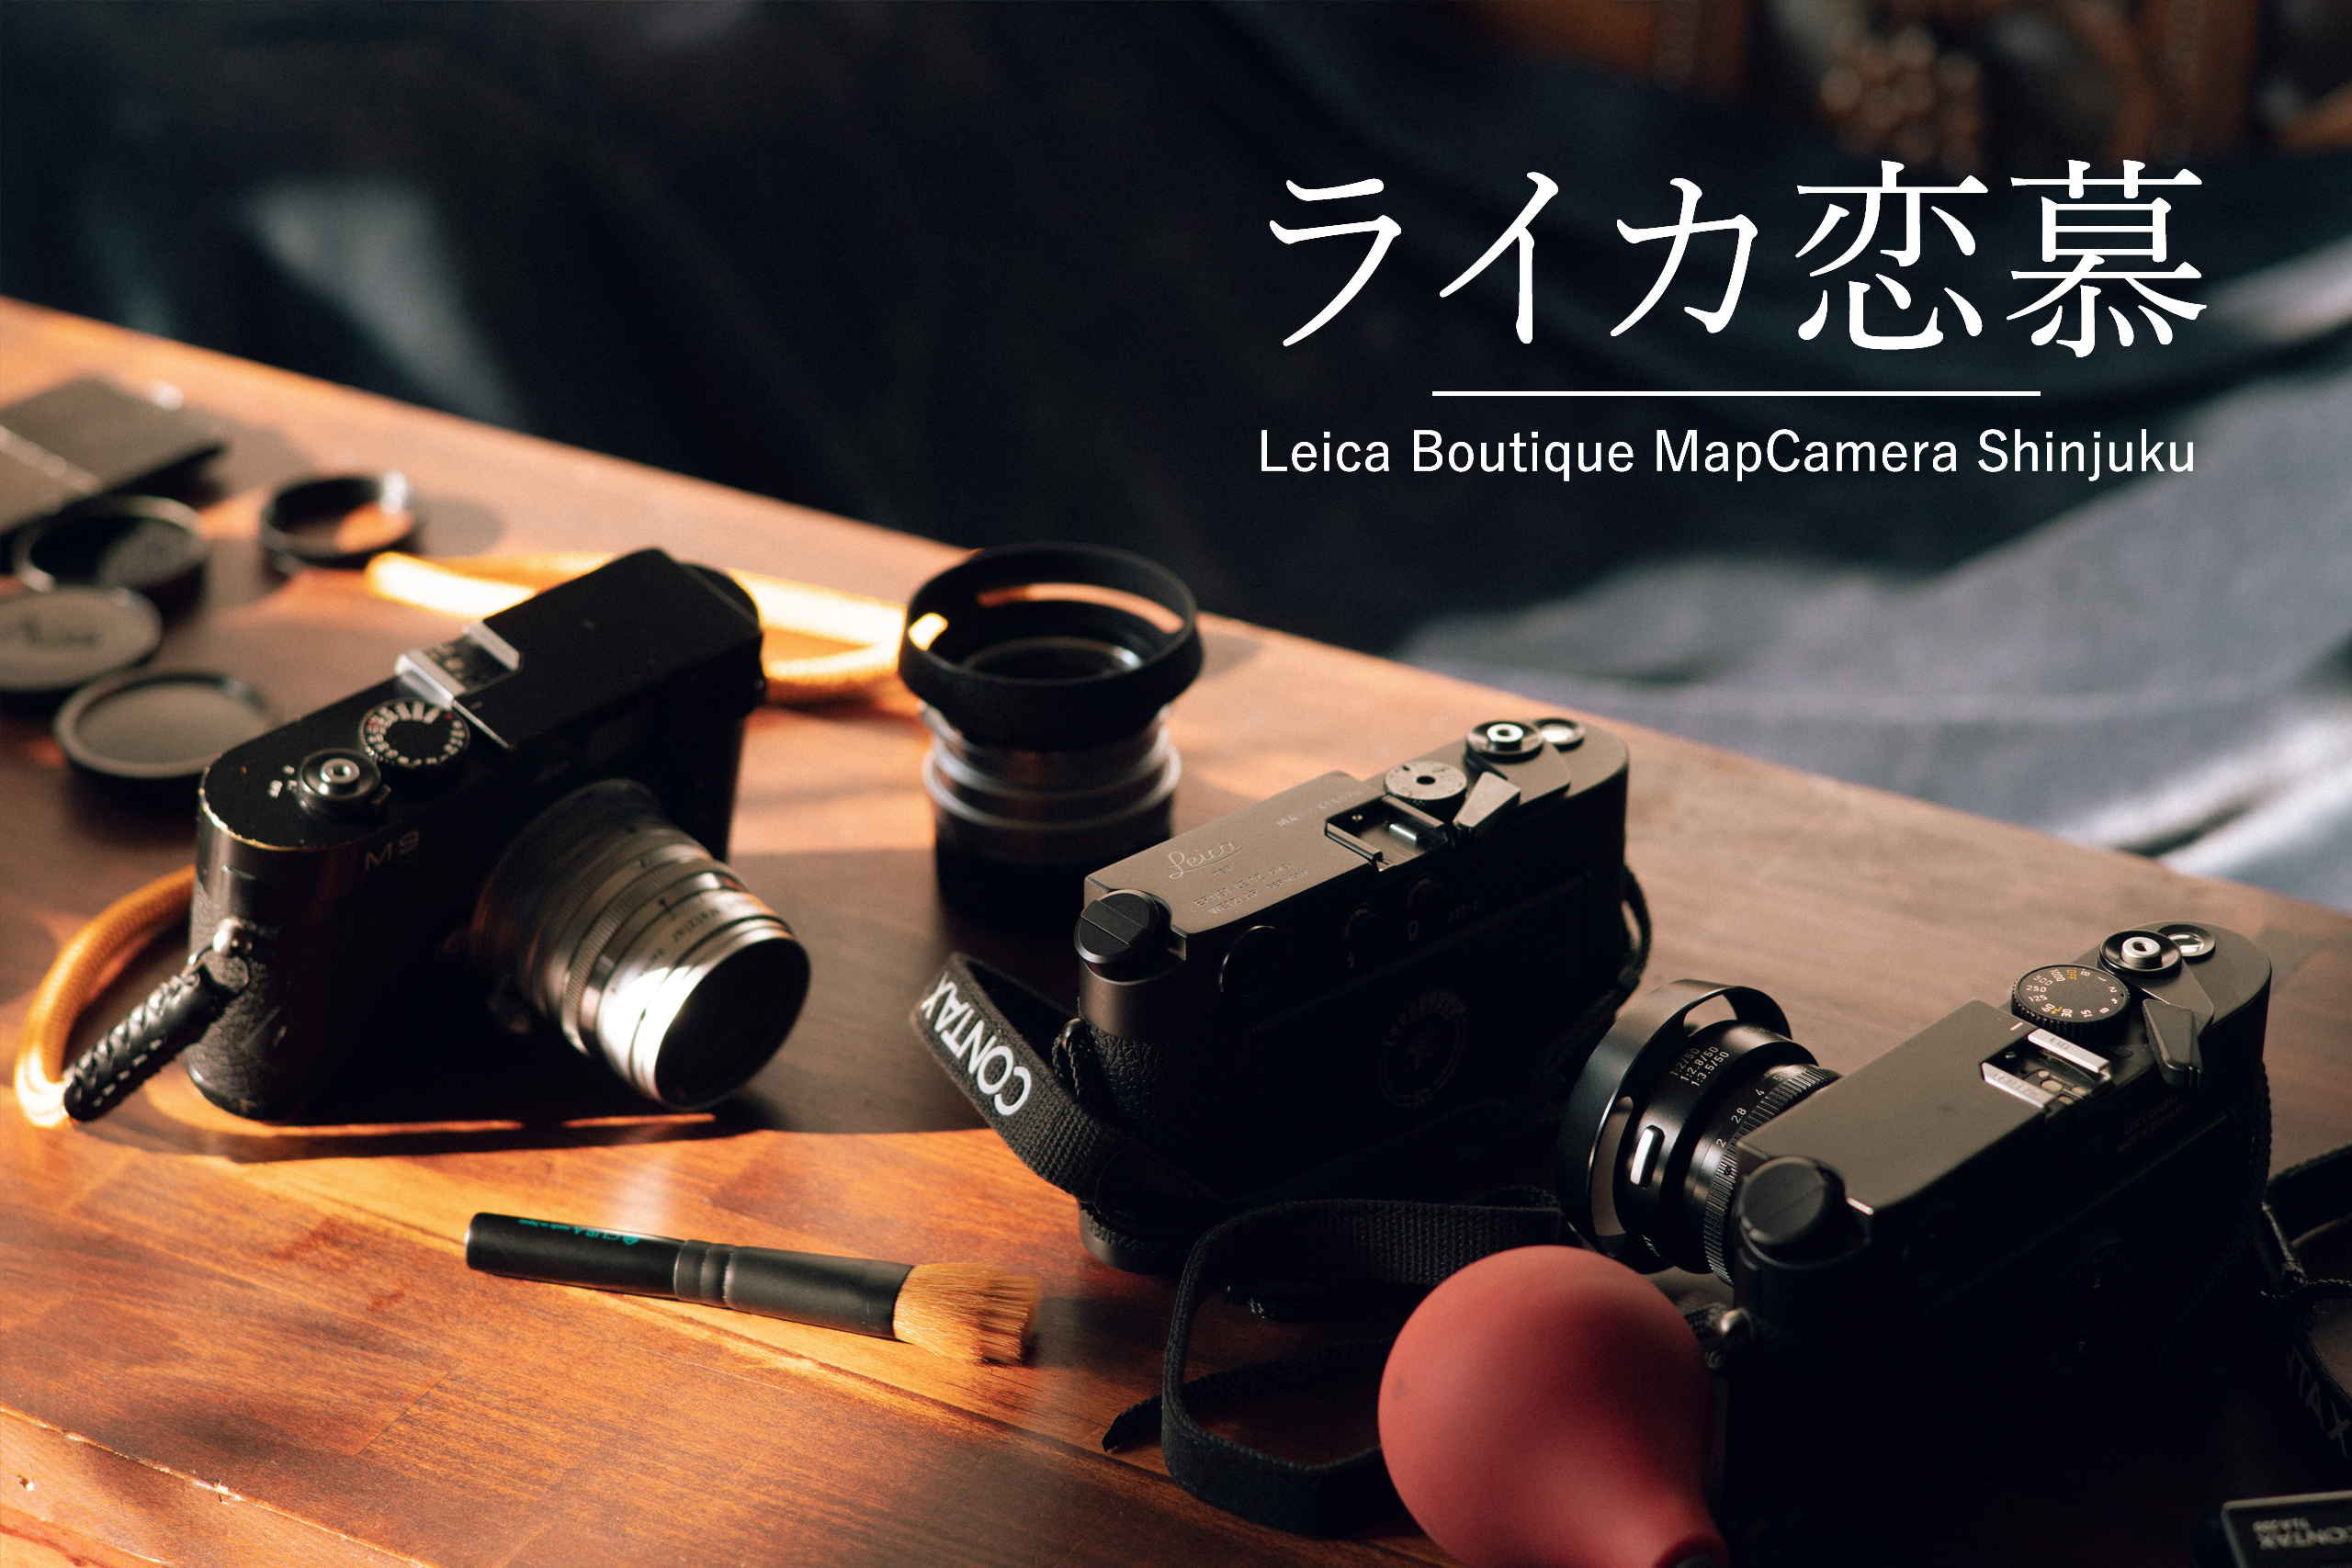 【Leica Boutique MapCamera Shinjuku 8th】私のM6TTL愛